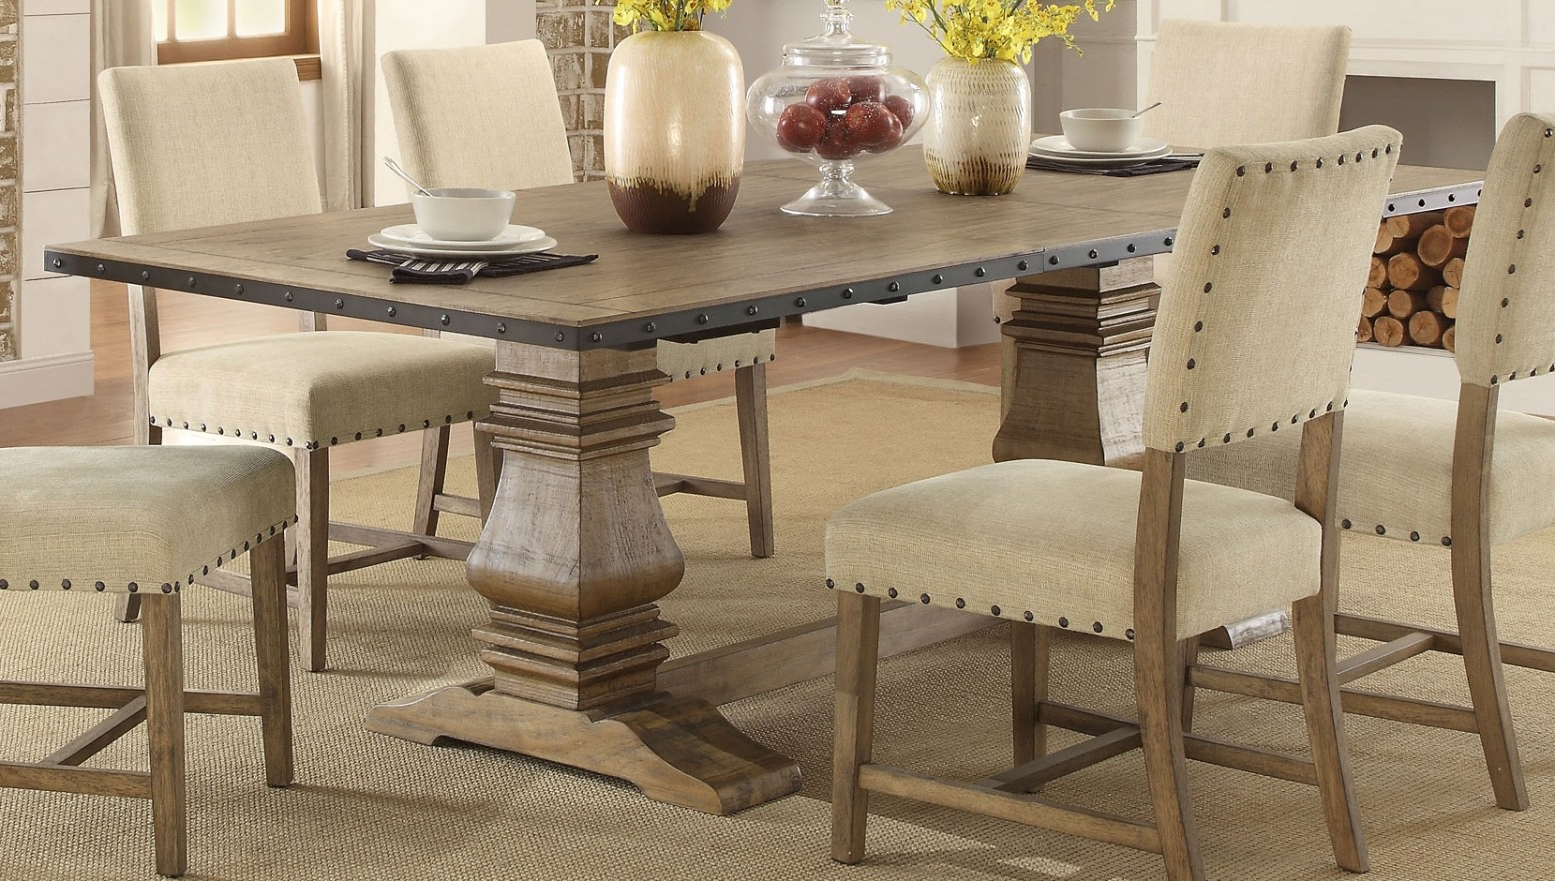 Preferred Veltry Transitional Rectangular Wood Dining Table Pertaining To Transitional Rectangular Dining Tables (View 15 of 30)